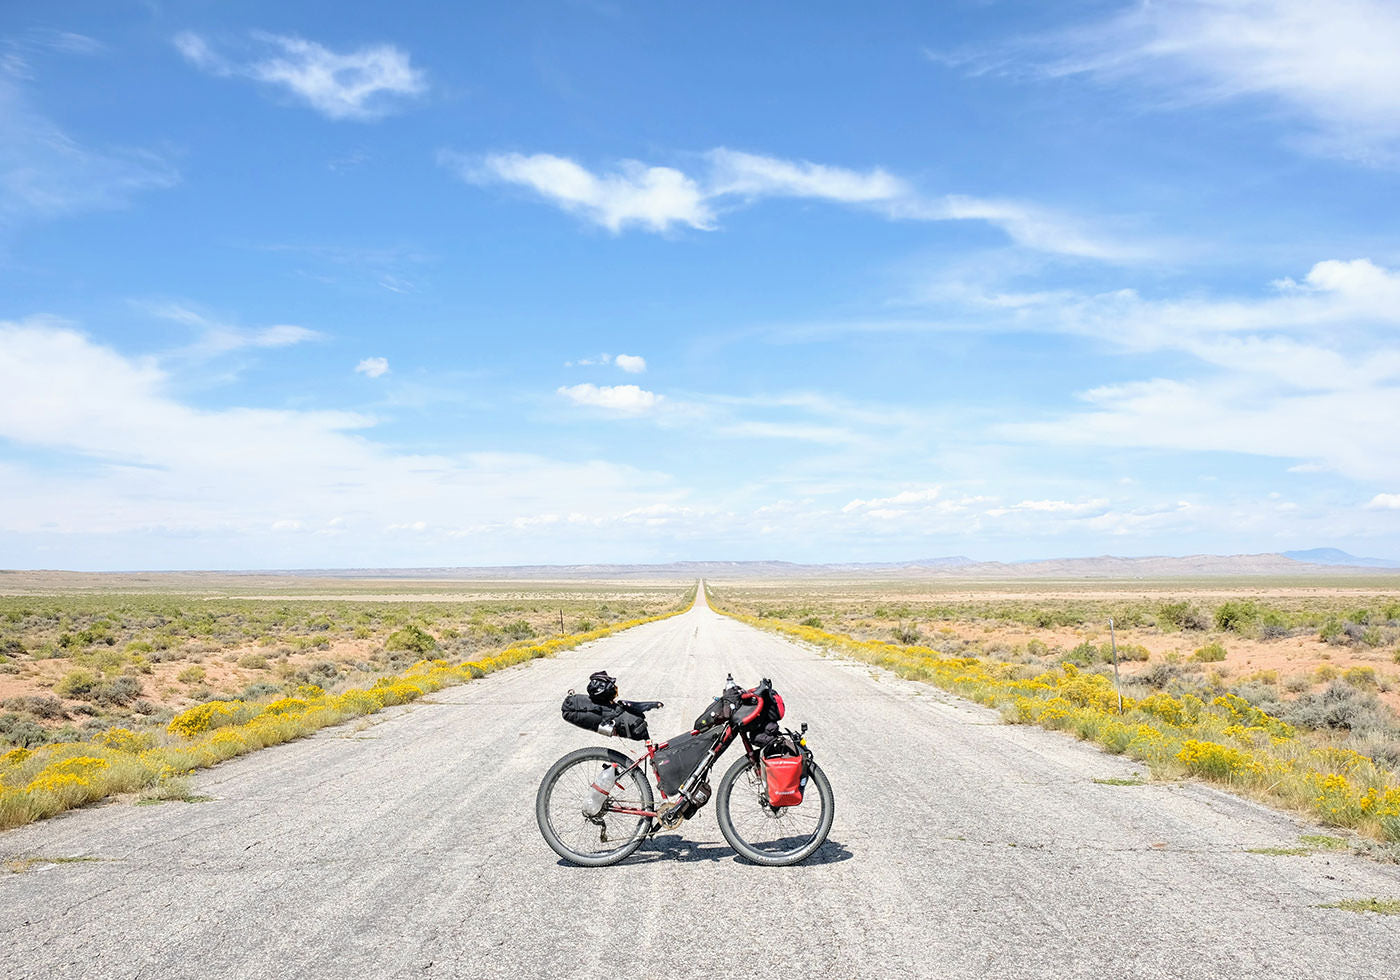 A beautiful view of a dirt road, stretching out into the distance with a bike in the foreground